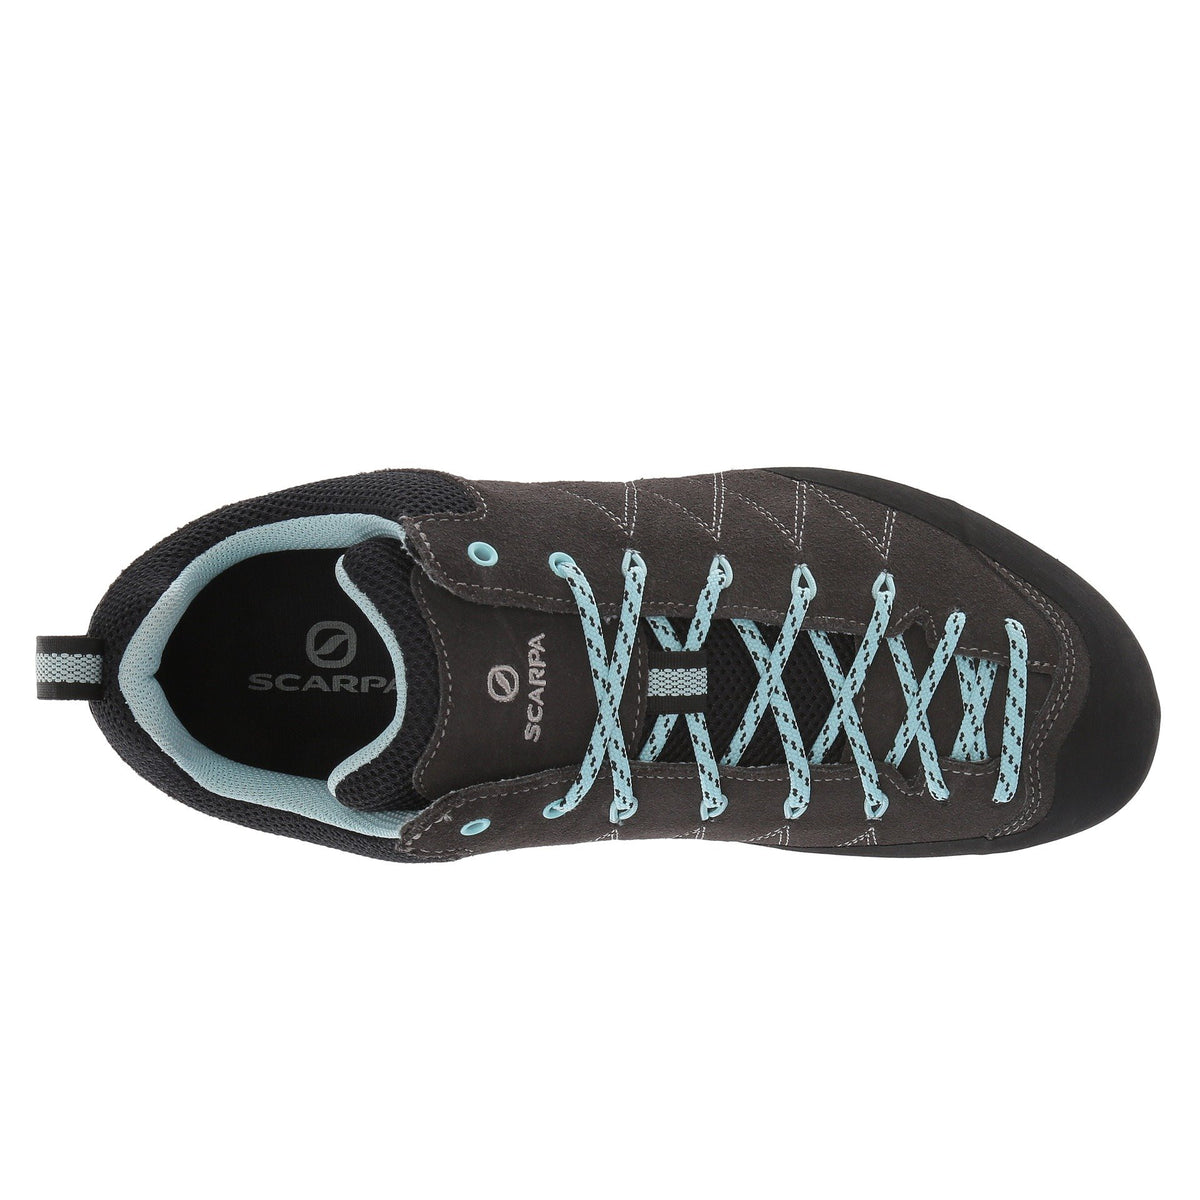 Scarpa Crux Womens approach shoe, as seen from above